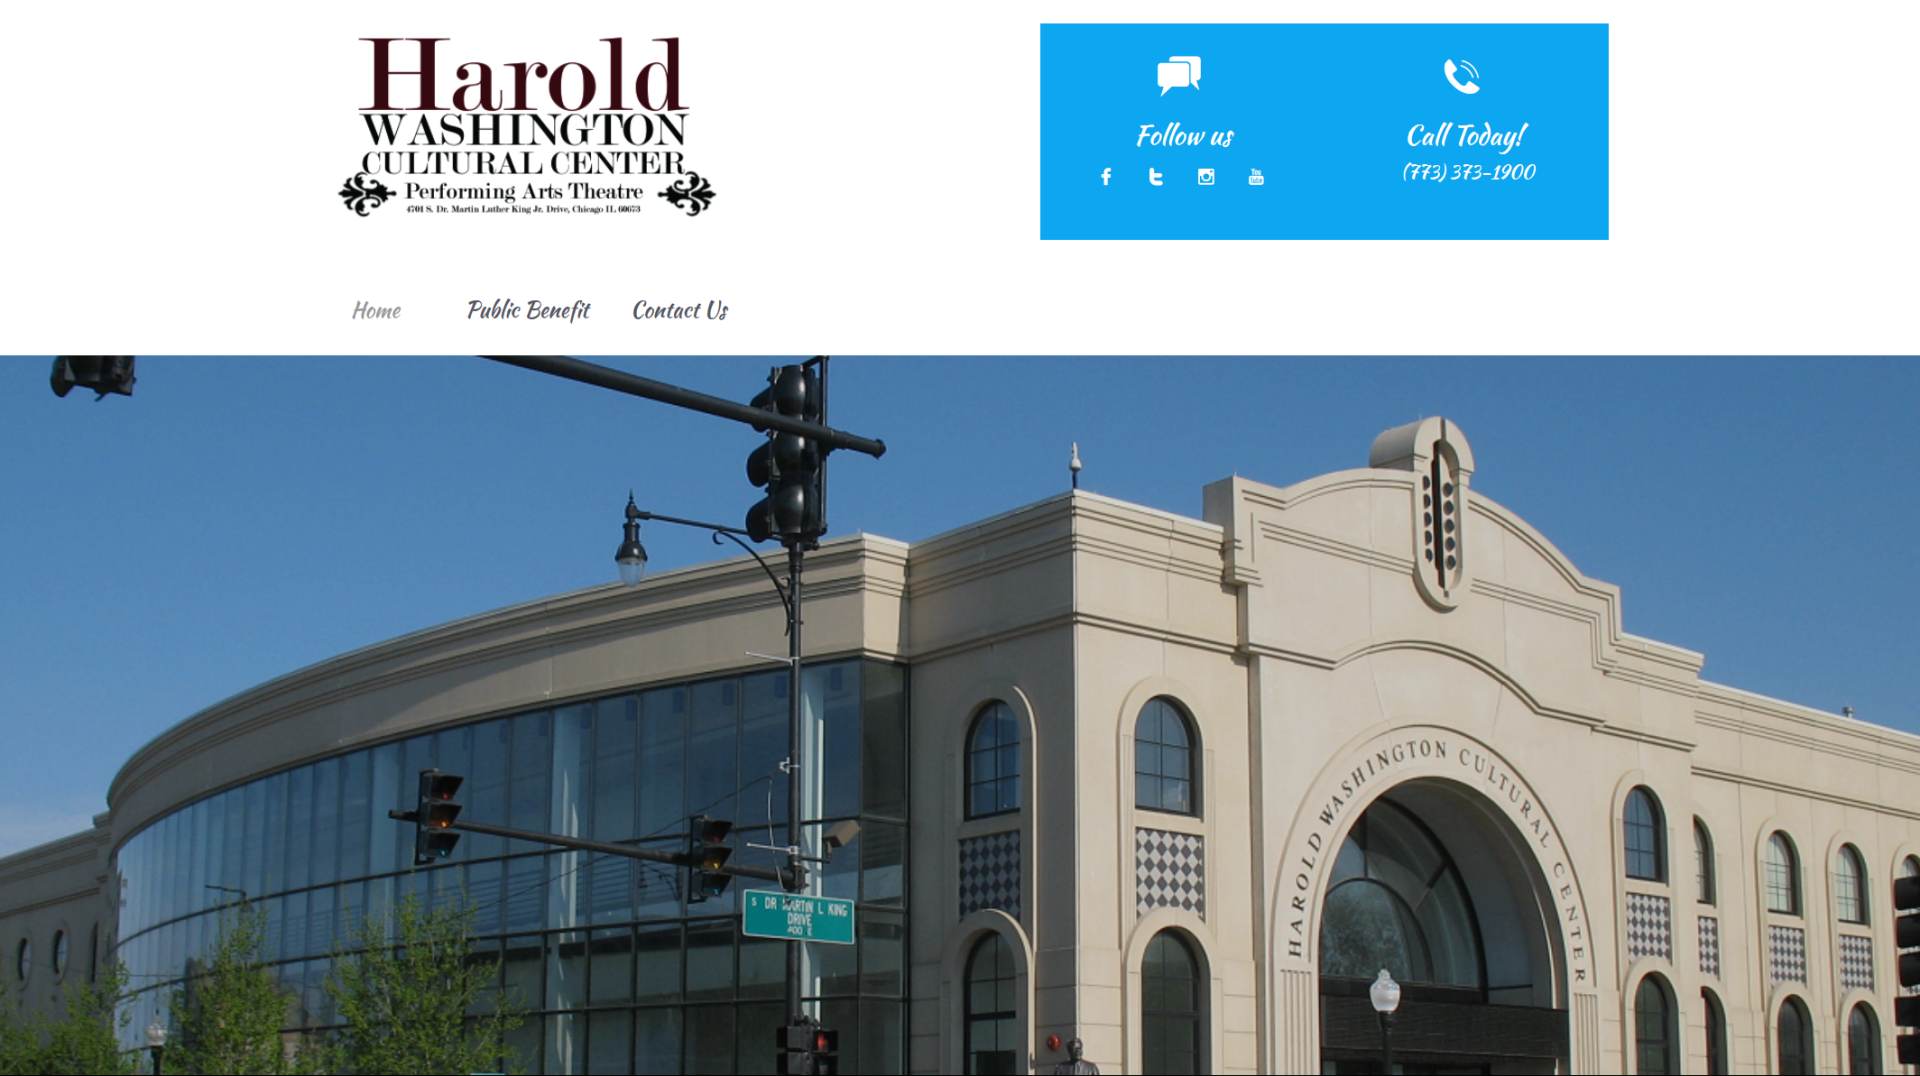 Harold Washington Cultural Center